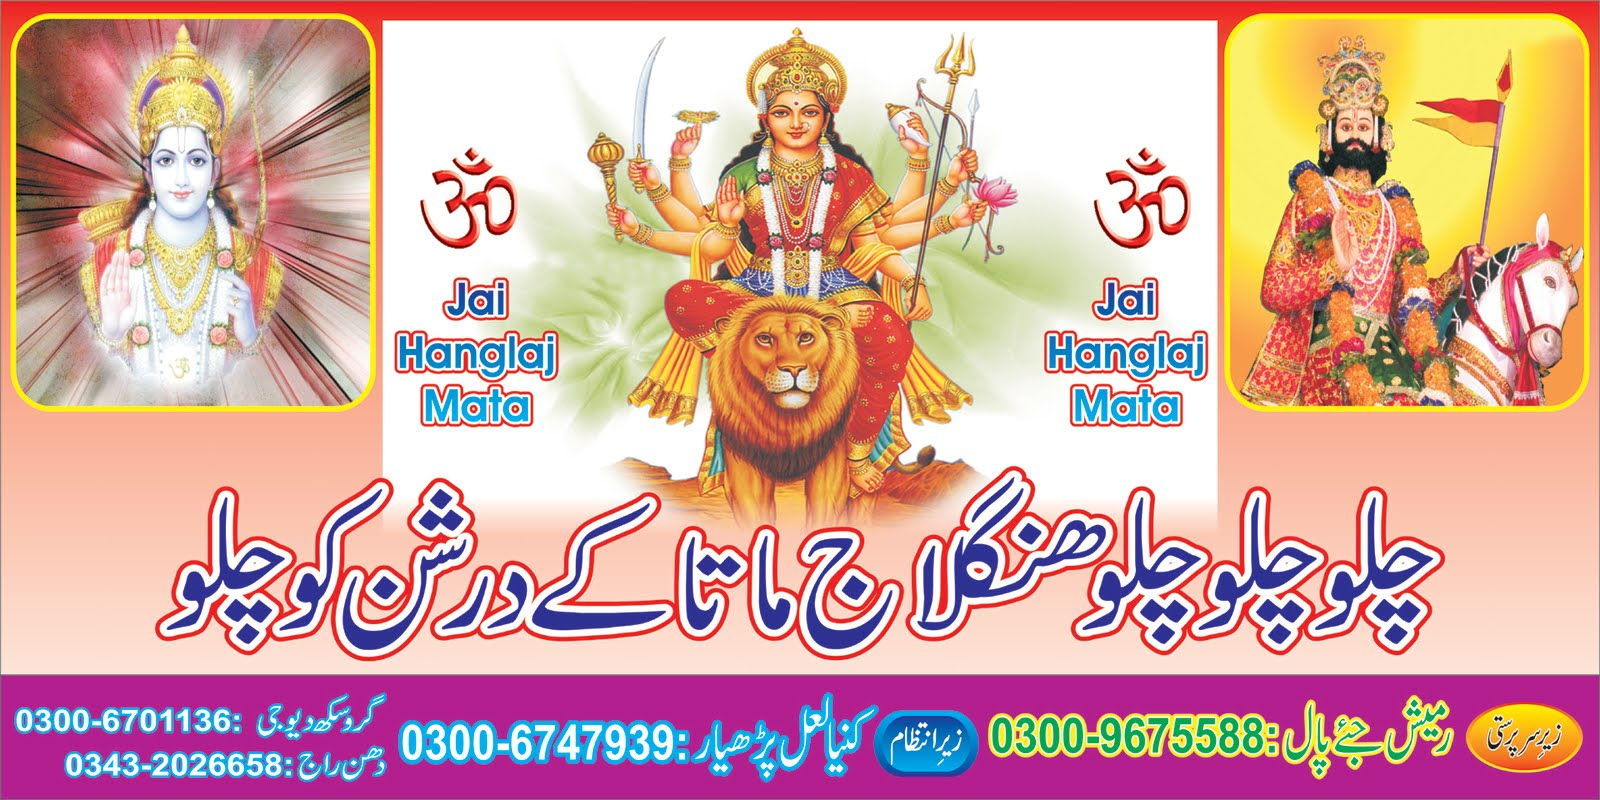 karachi hindu dating site Mahyas marriage bureau is working mainly for all the ethnic groups living in pakistan in which the most dominating one is punjabi and urdu speakers mahyas matrimonial services are for the people who are truly interested in marriage and are serious to get married as these services are not provided in dating sites, and strictly speaking.